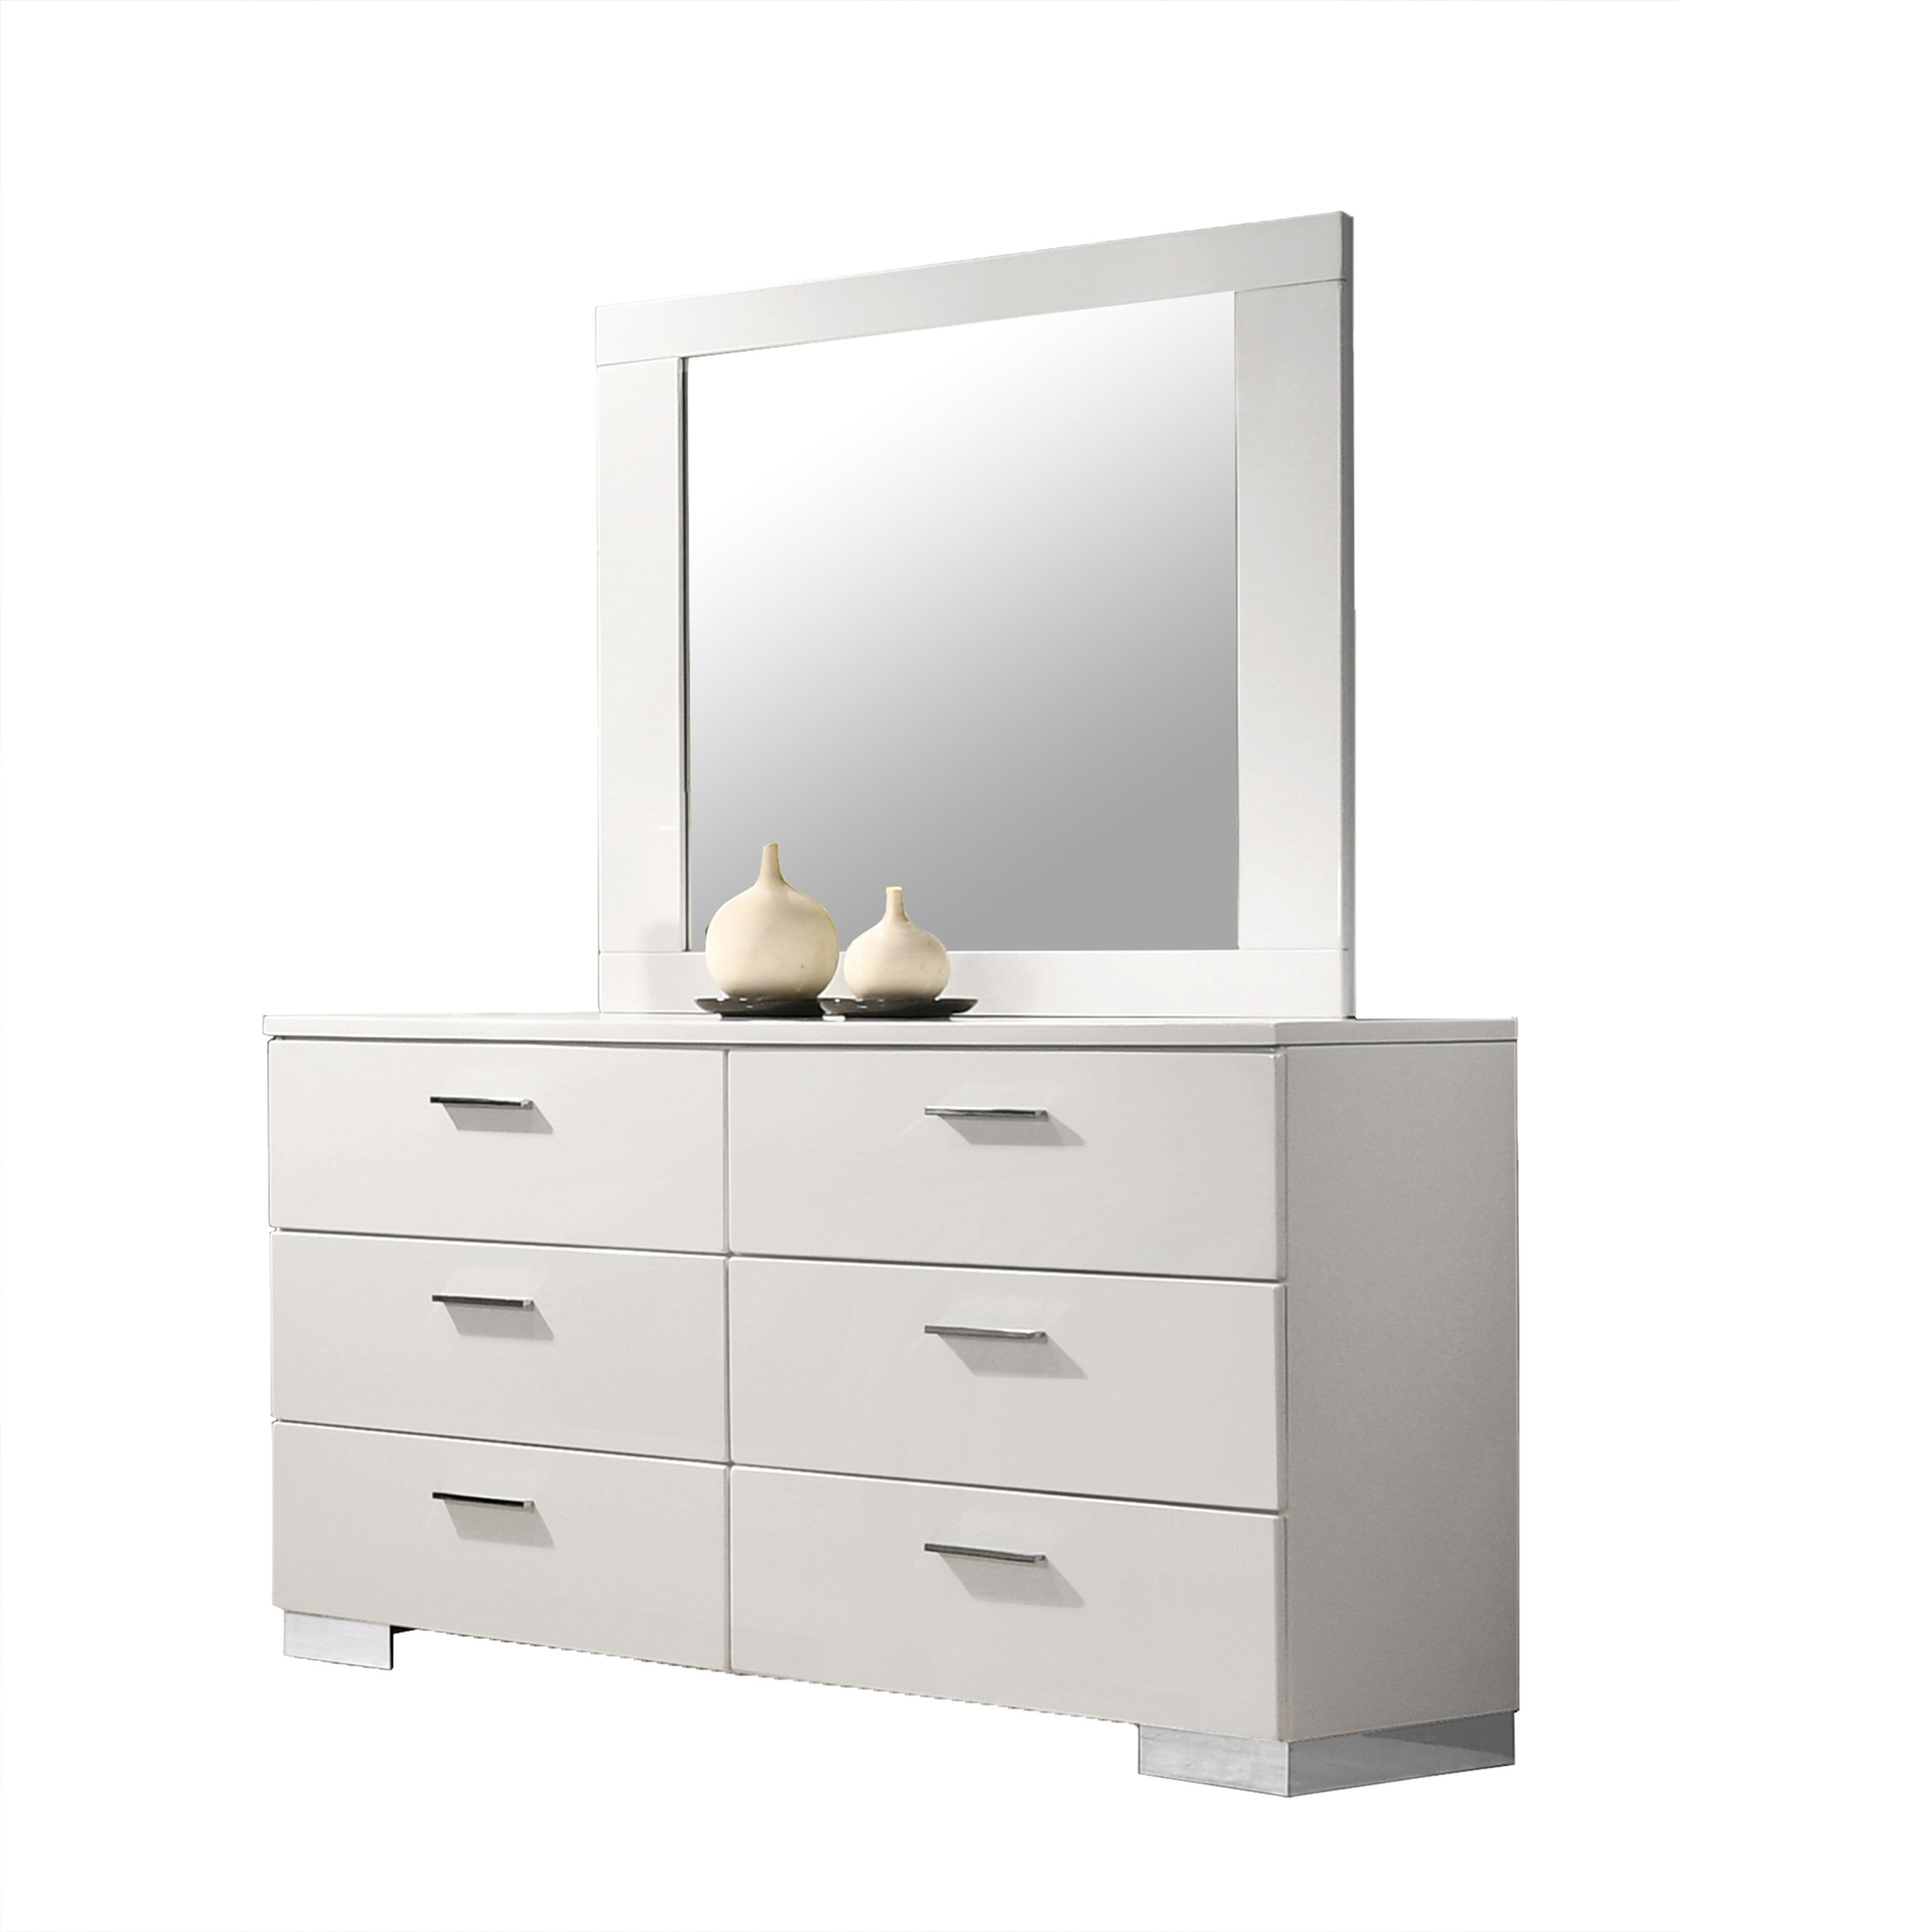 Best Quality Furniture Rose Dresser With Mirror Or Dresser Only Overstock 30406516